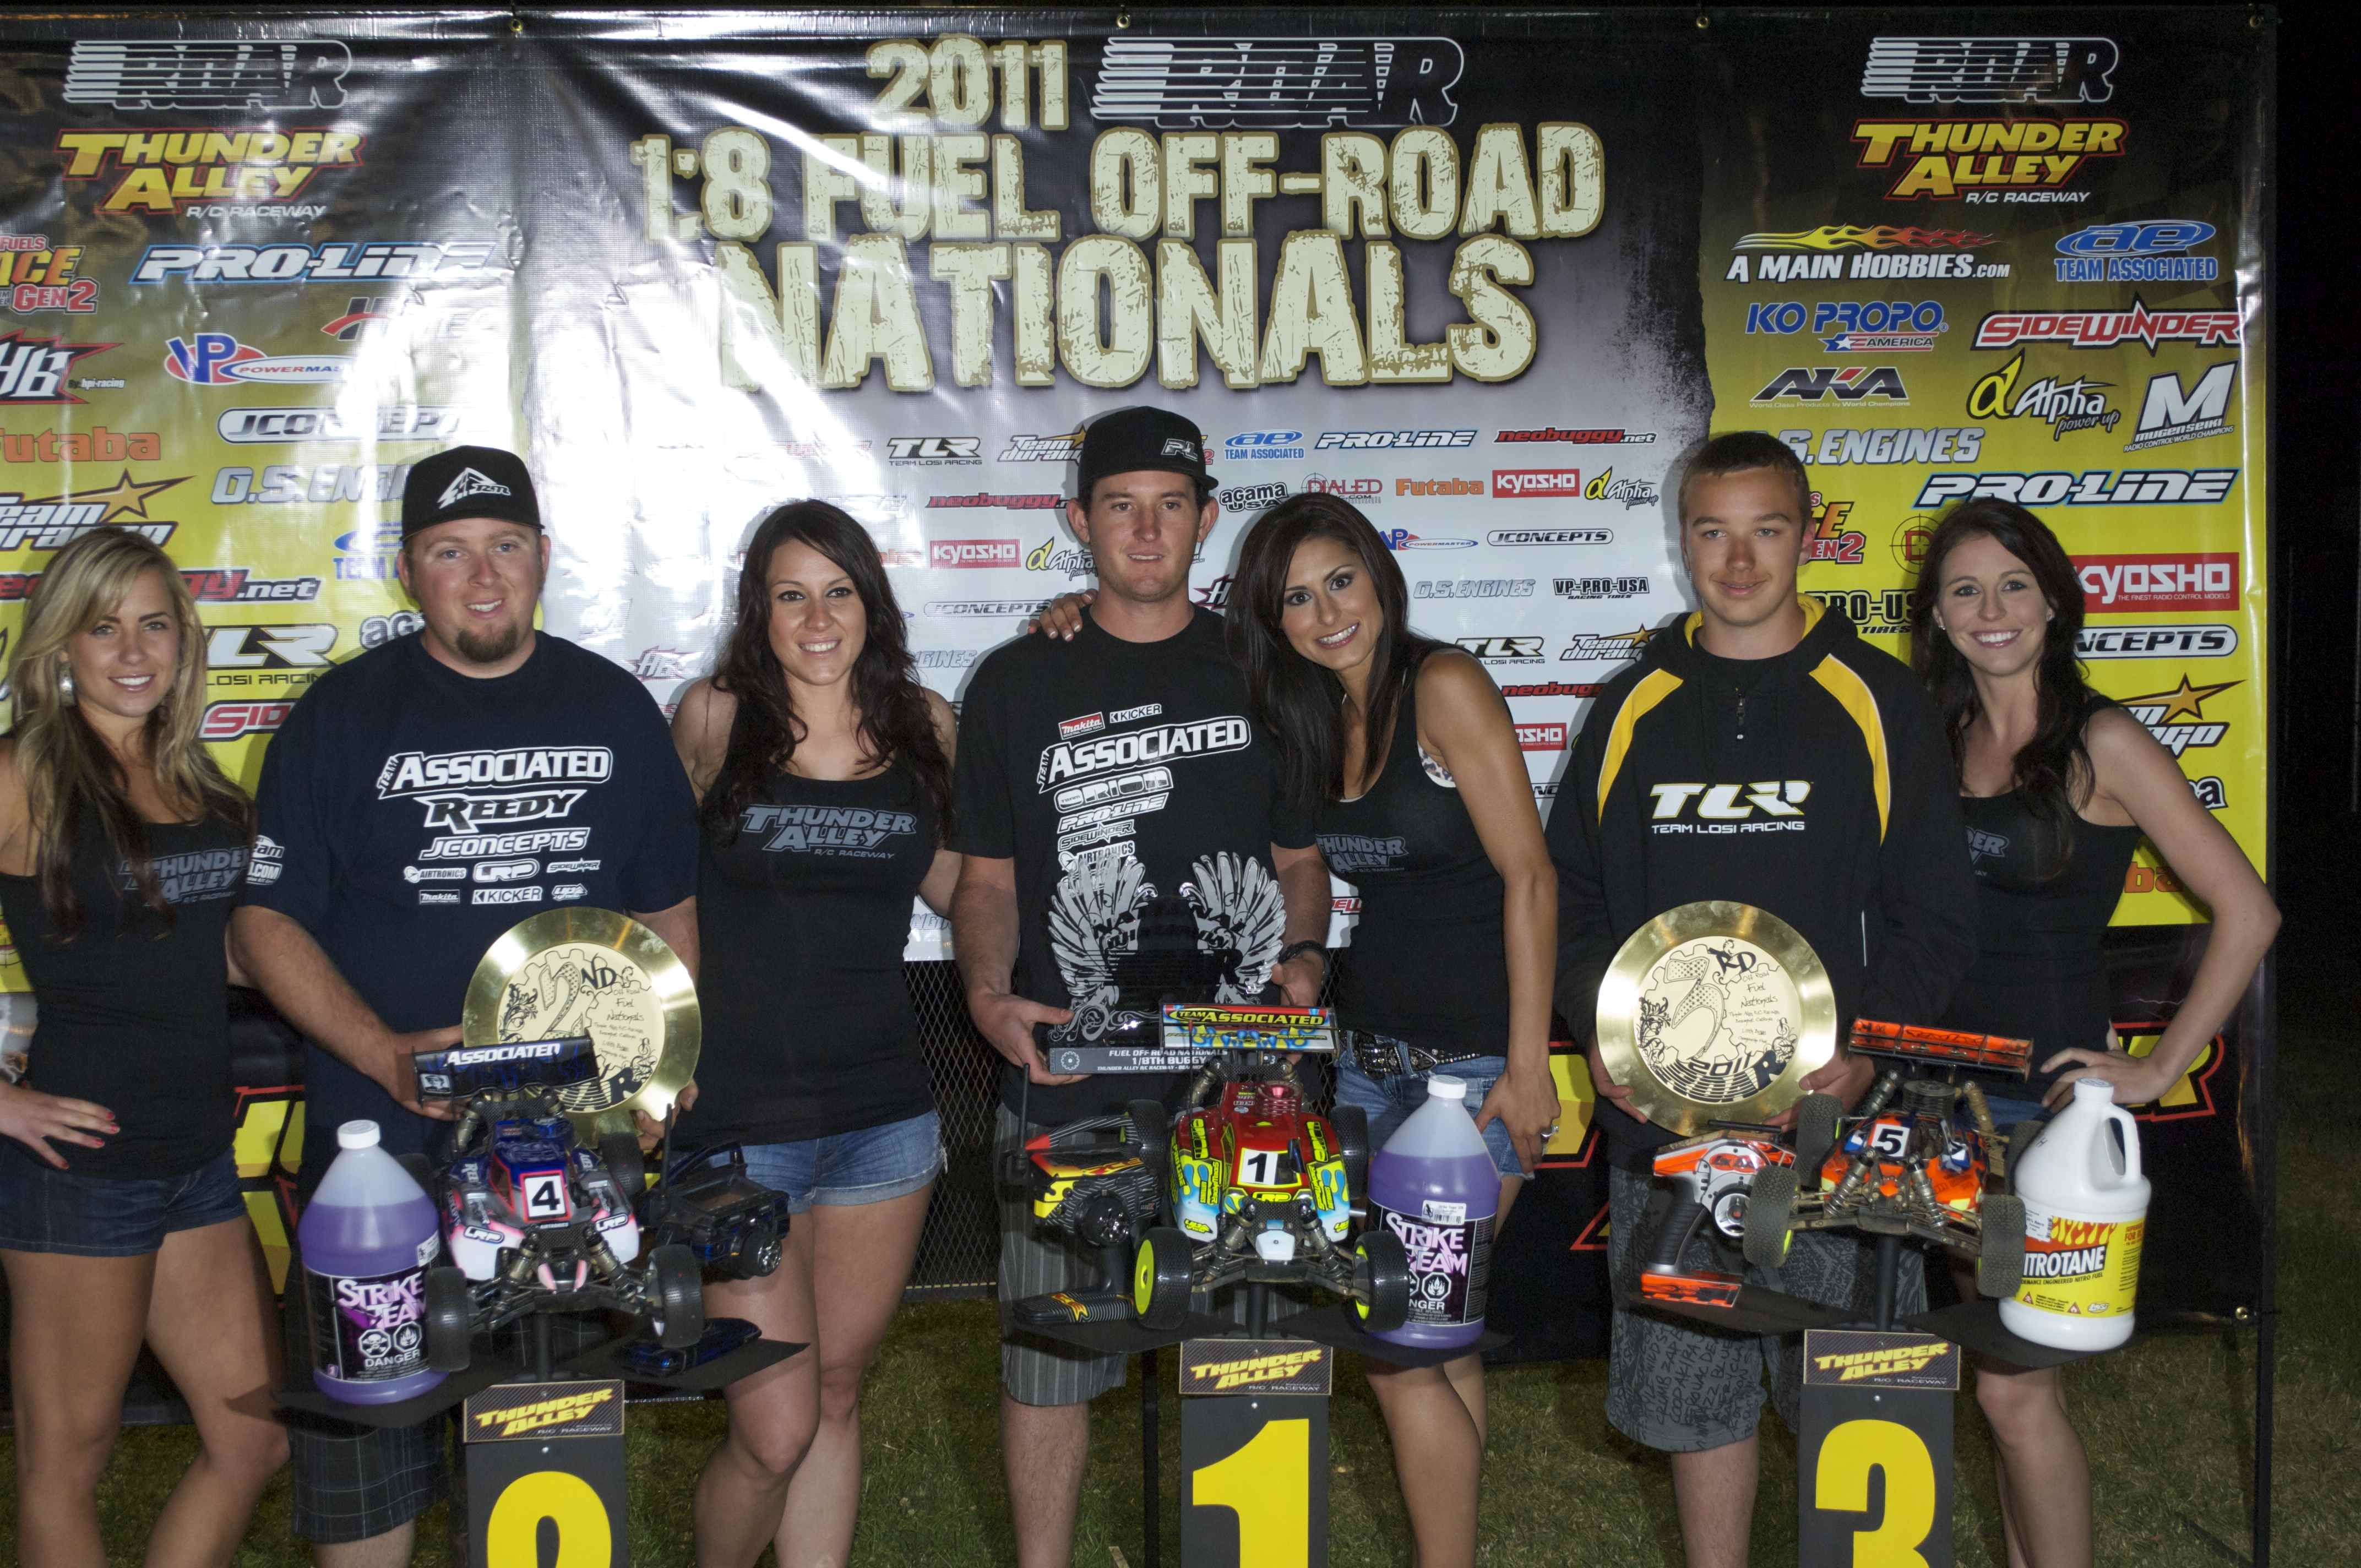 2011 ROAR 1/8-scale Fuel Off-road Nationals, Team Associated Wins Big